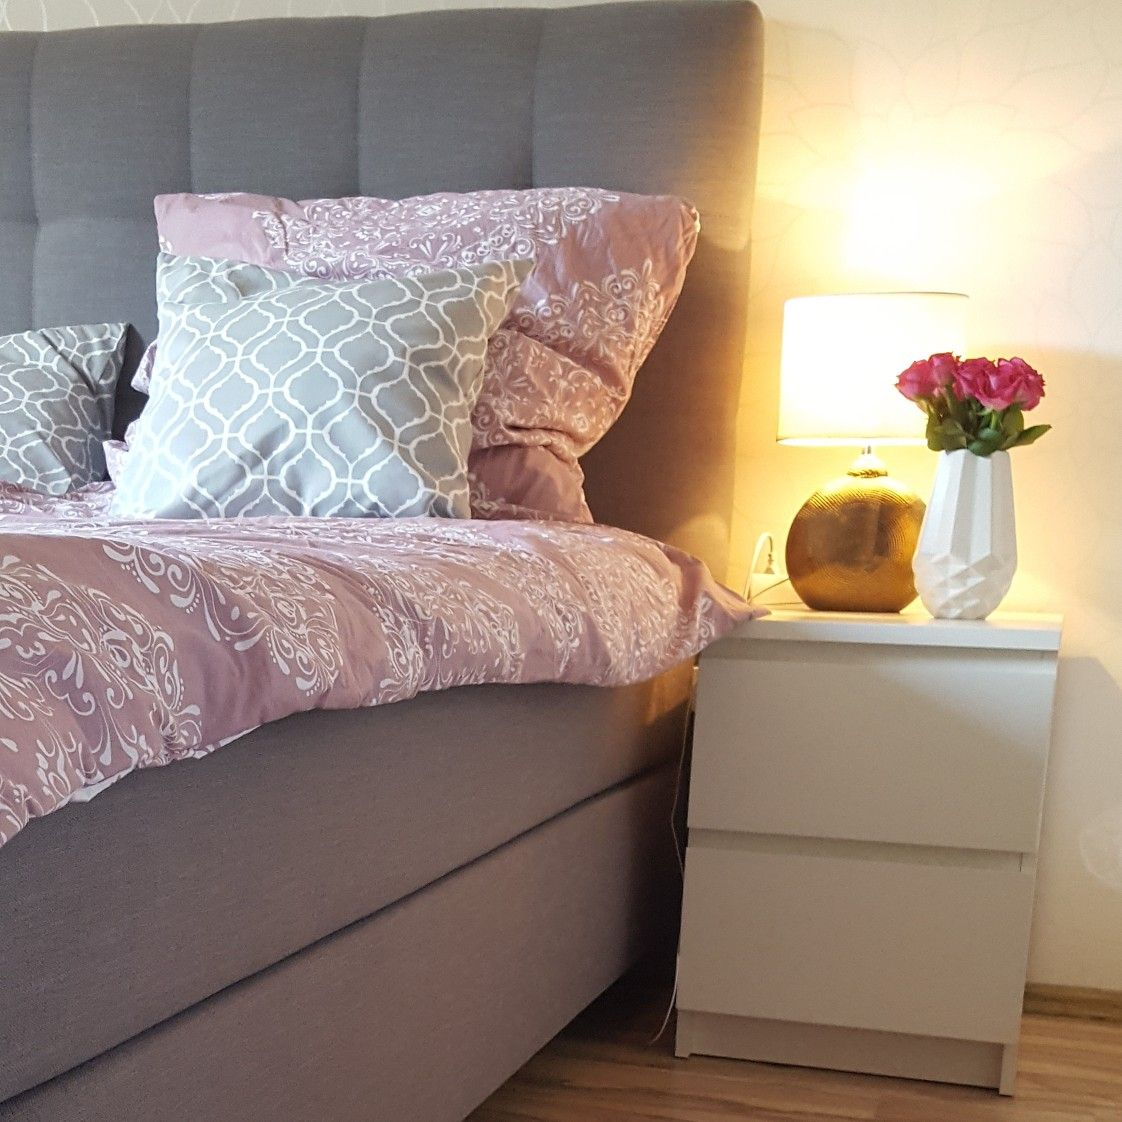 schlafzimmer bedroom rosa grau ikea schlaraffia boxspringbett schlafzimmer pinterest. Black Bedroom Furniture Sets. Home Design Ideas